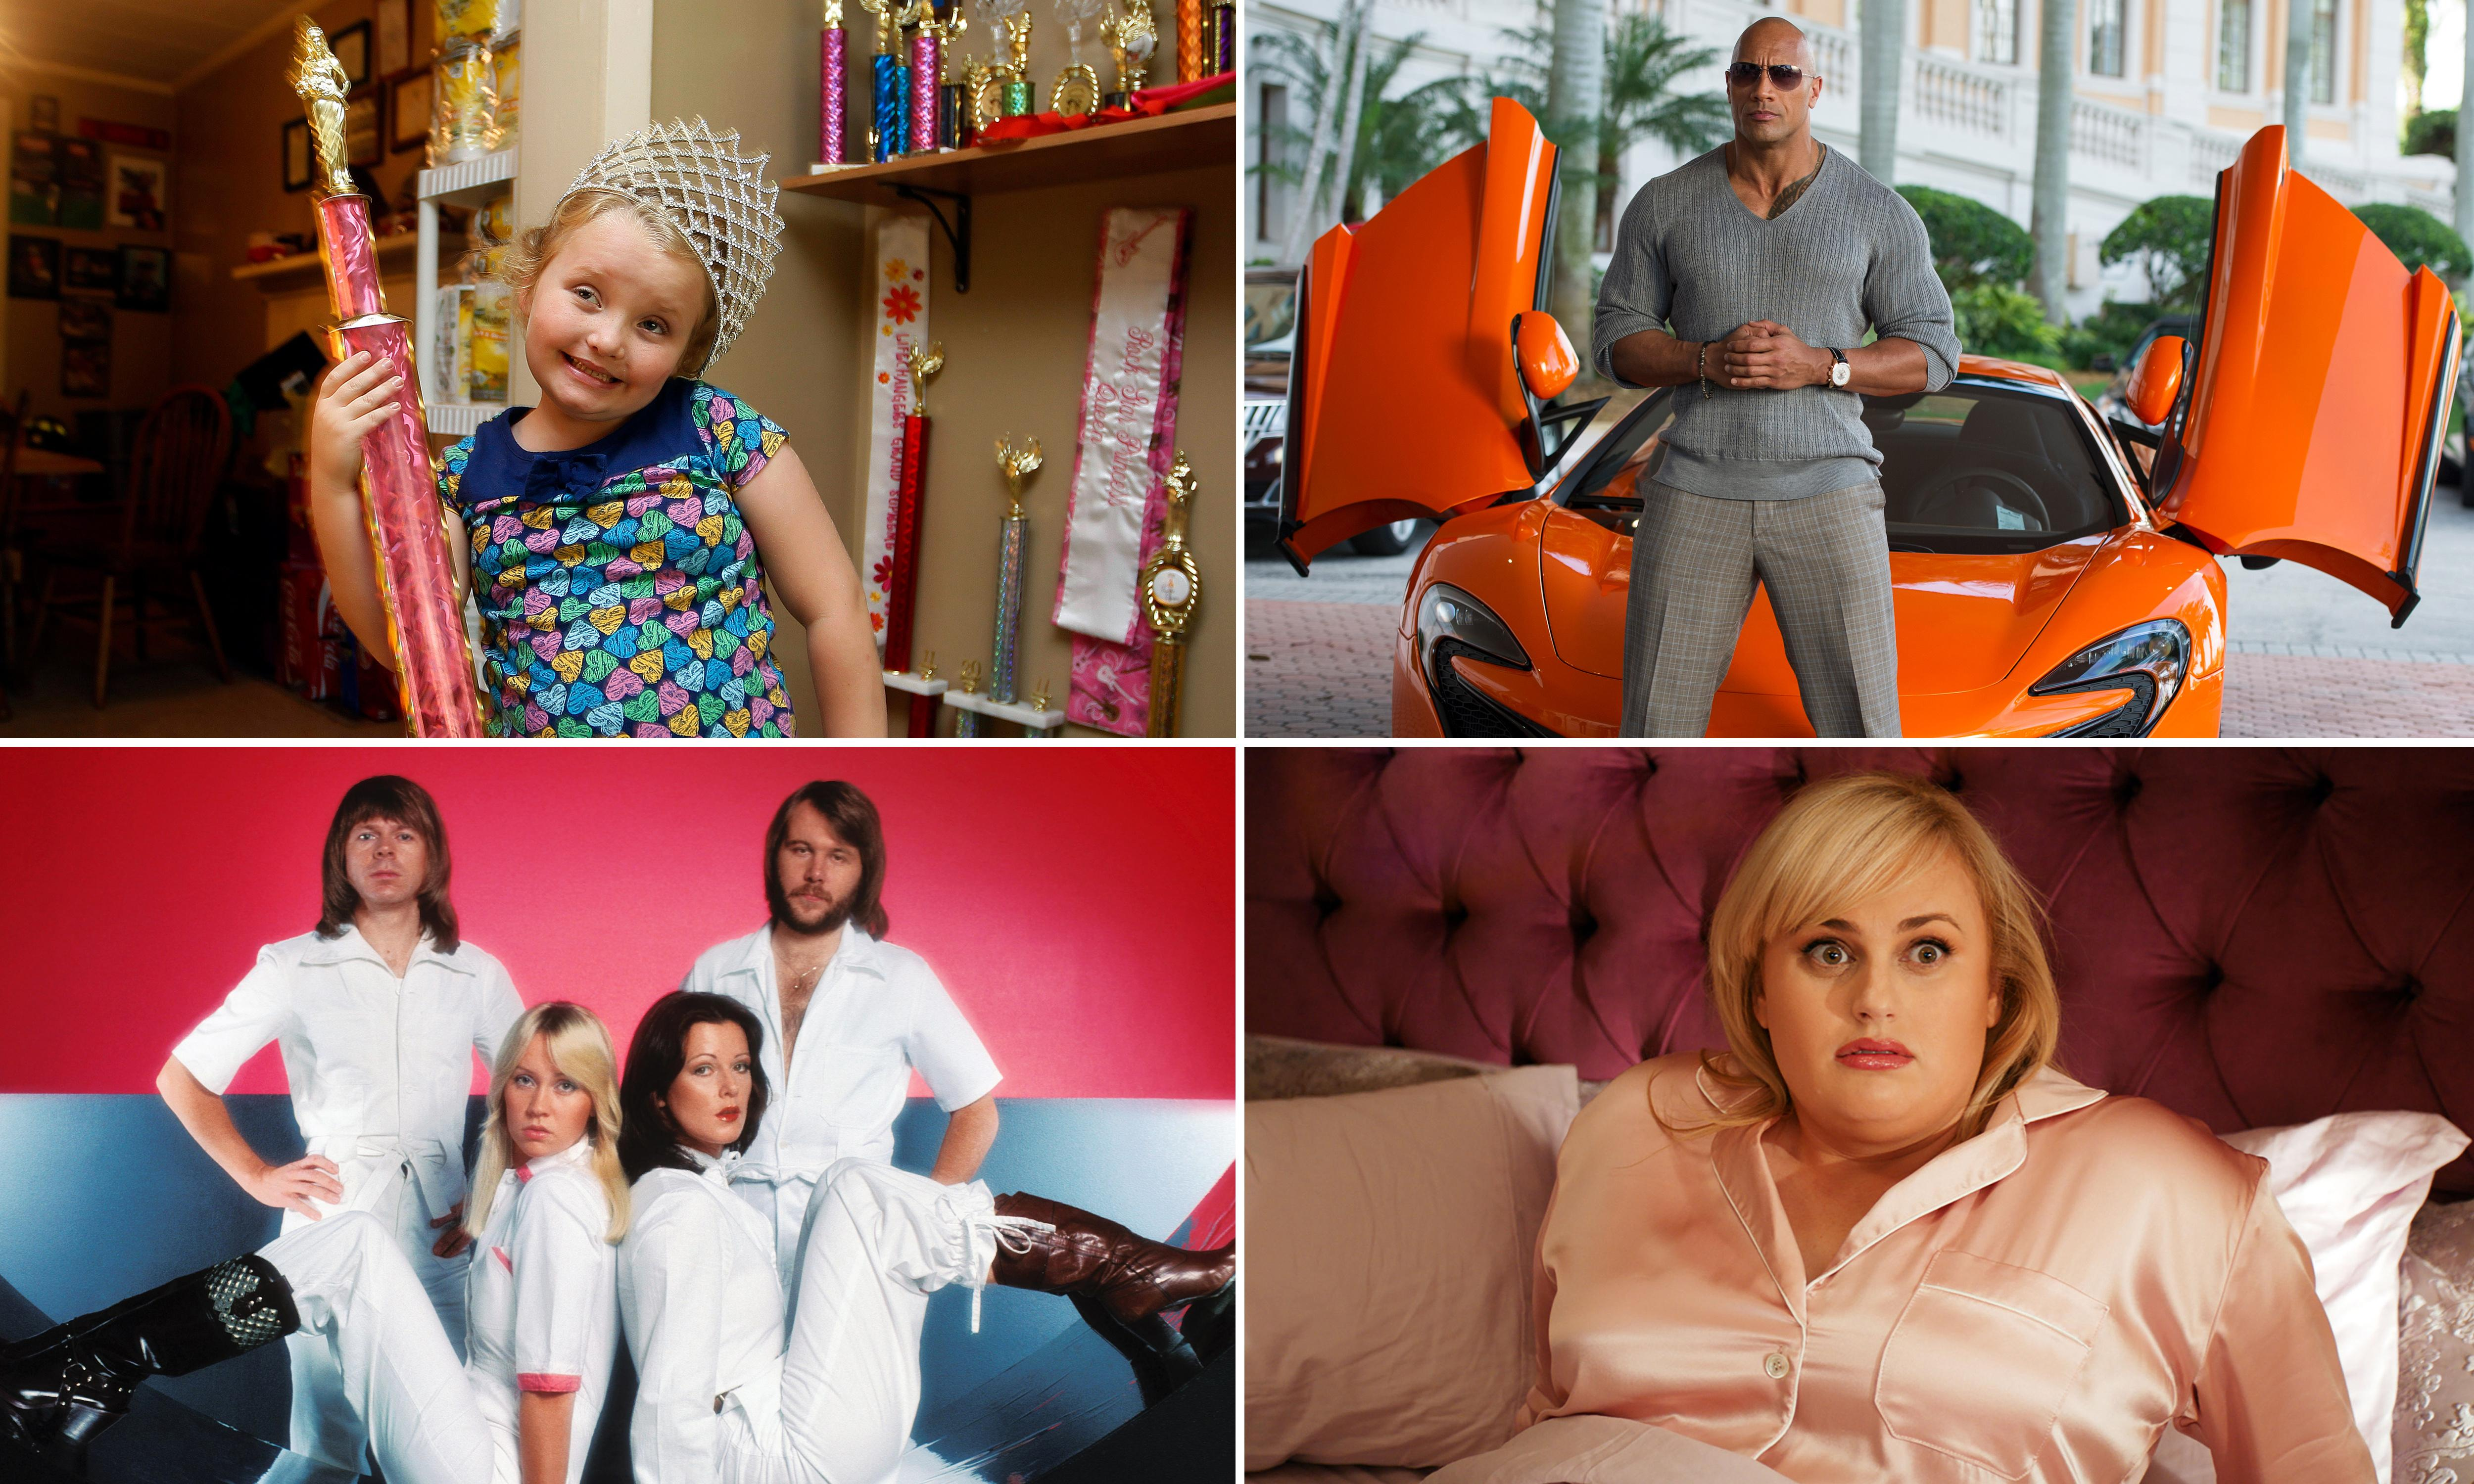 Ballers to Honey Boo Boo: pop culture tastes of the Democratic candidates